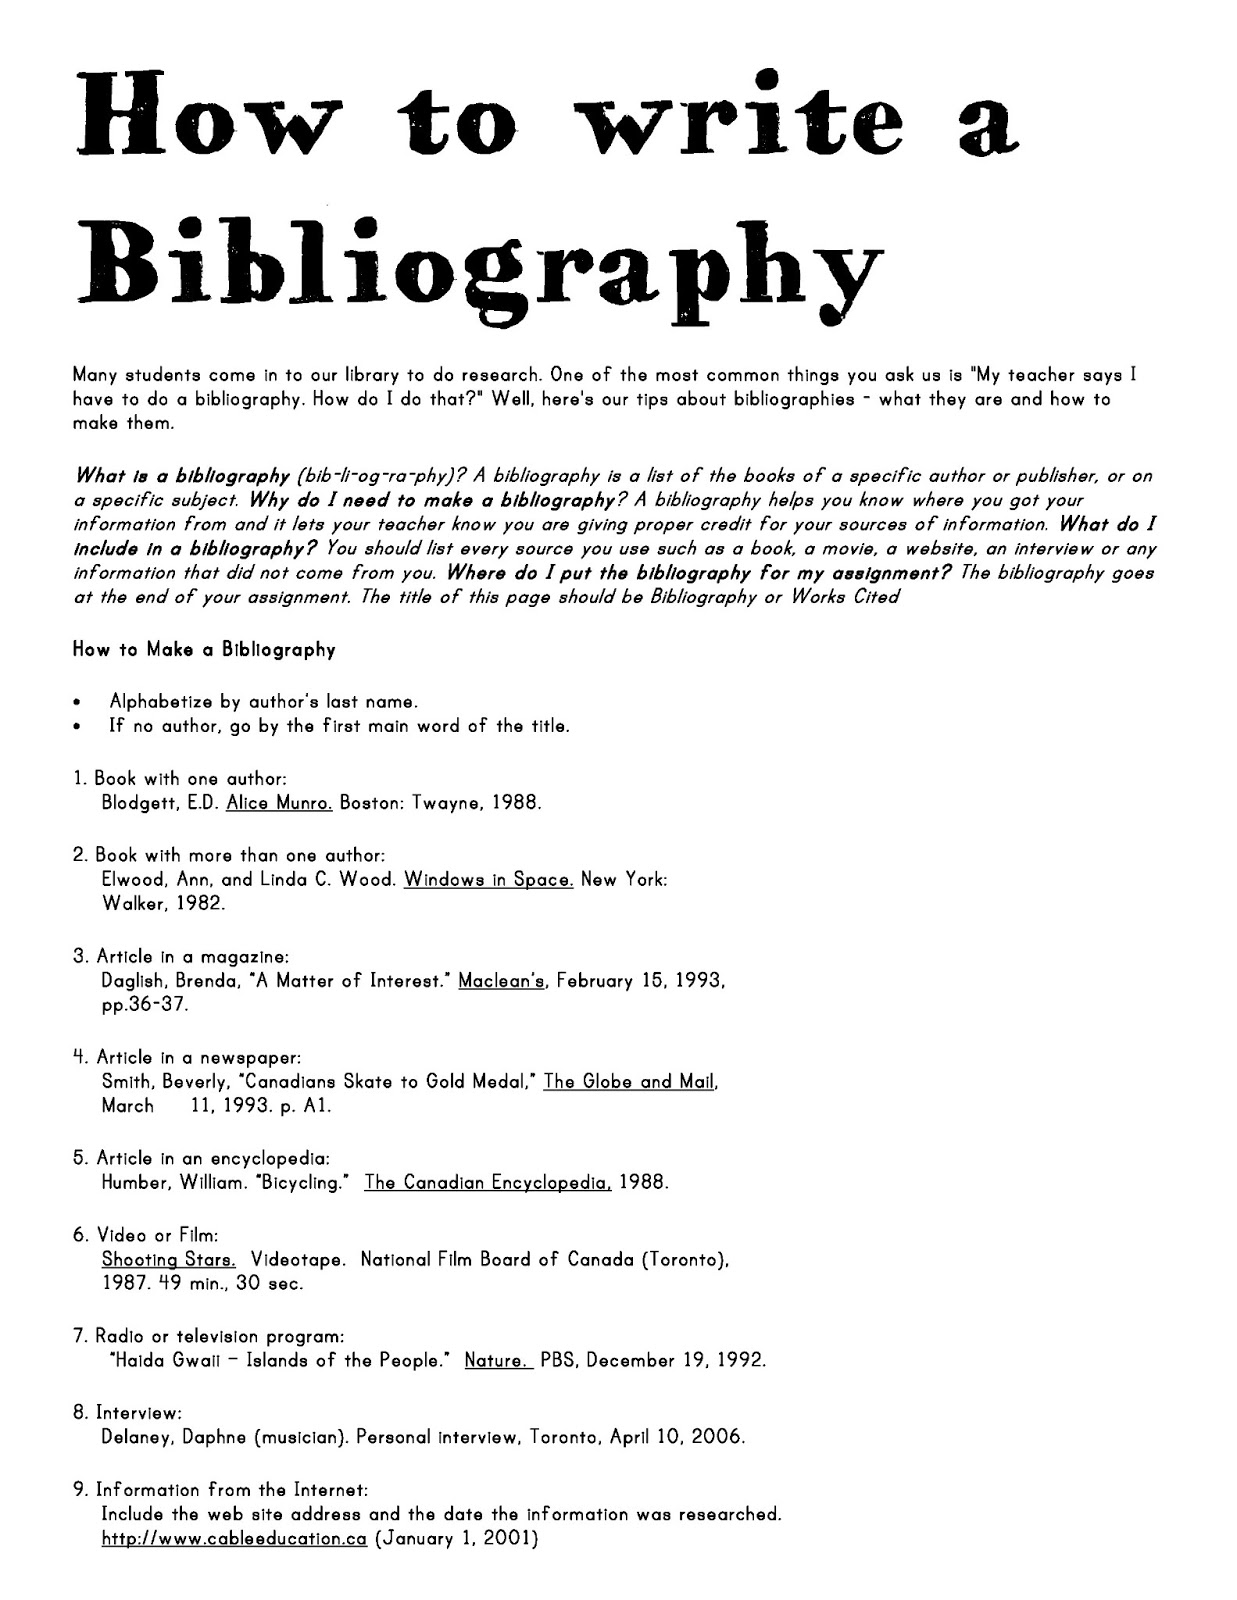 ... website. Buy Annotated Bibliography From a Reliable Essay Writing